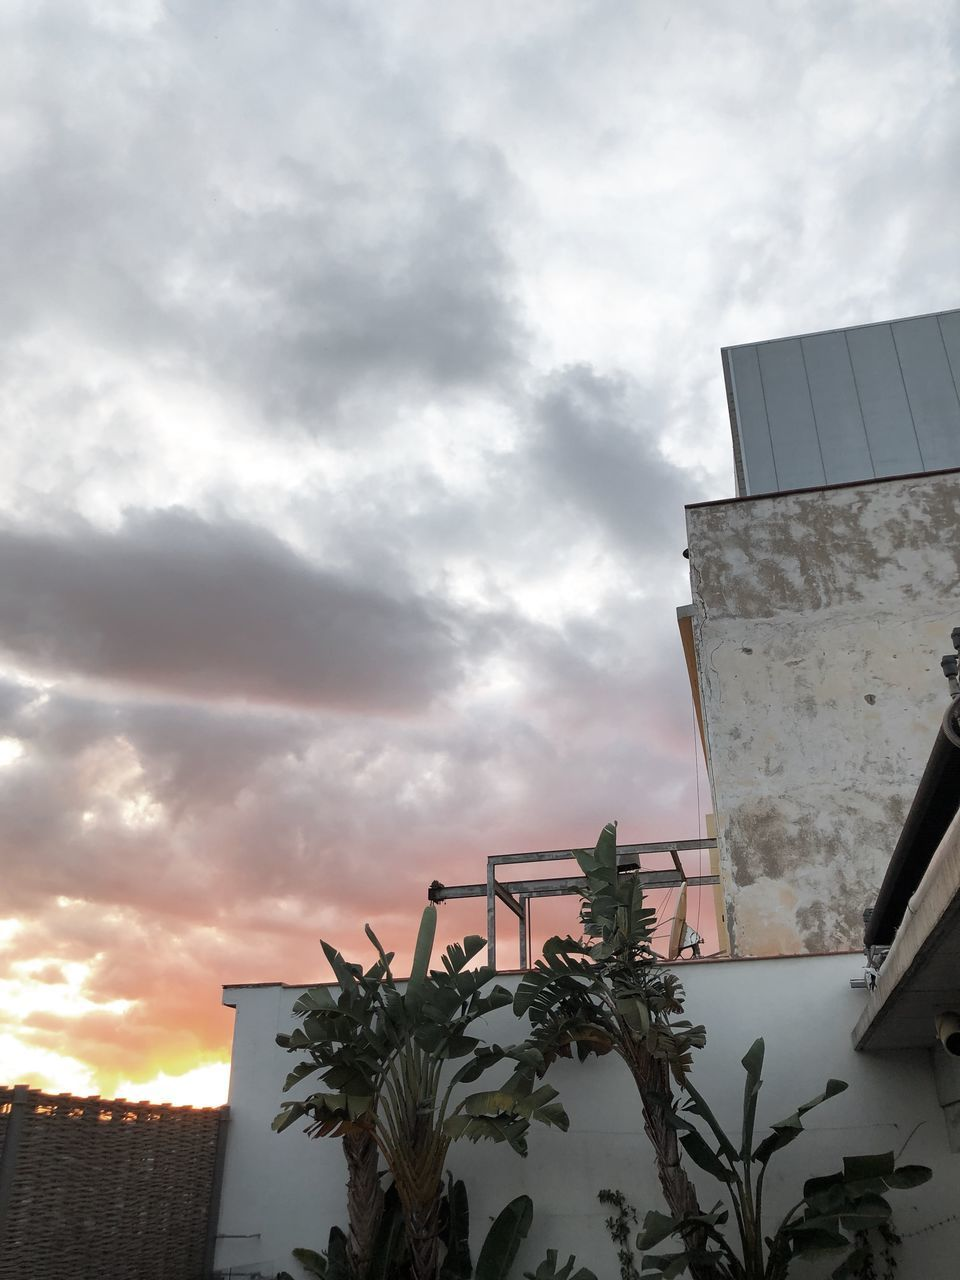 cloud - sky, built structure, sky, architecture, building exterior, low angle view, nature, plant, building, no people, sunset, outdoors, growth, tree, day, residential district, city, beauty in nature, overcast